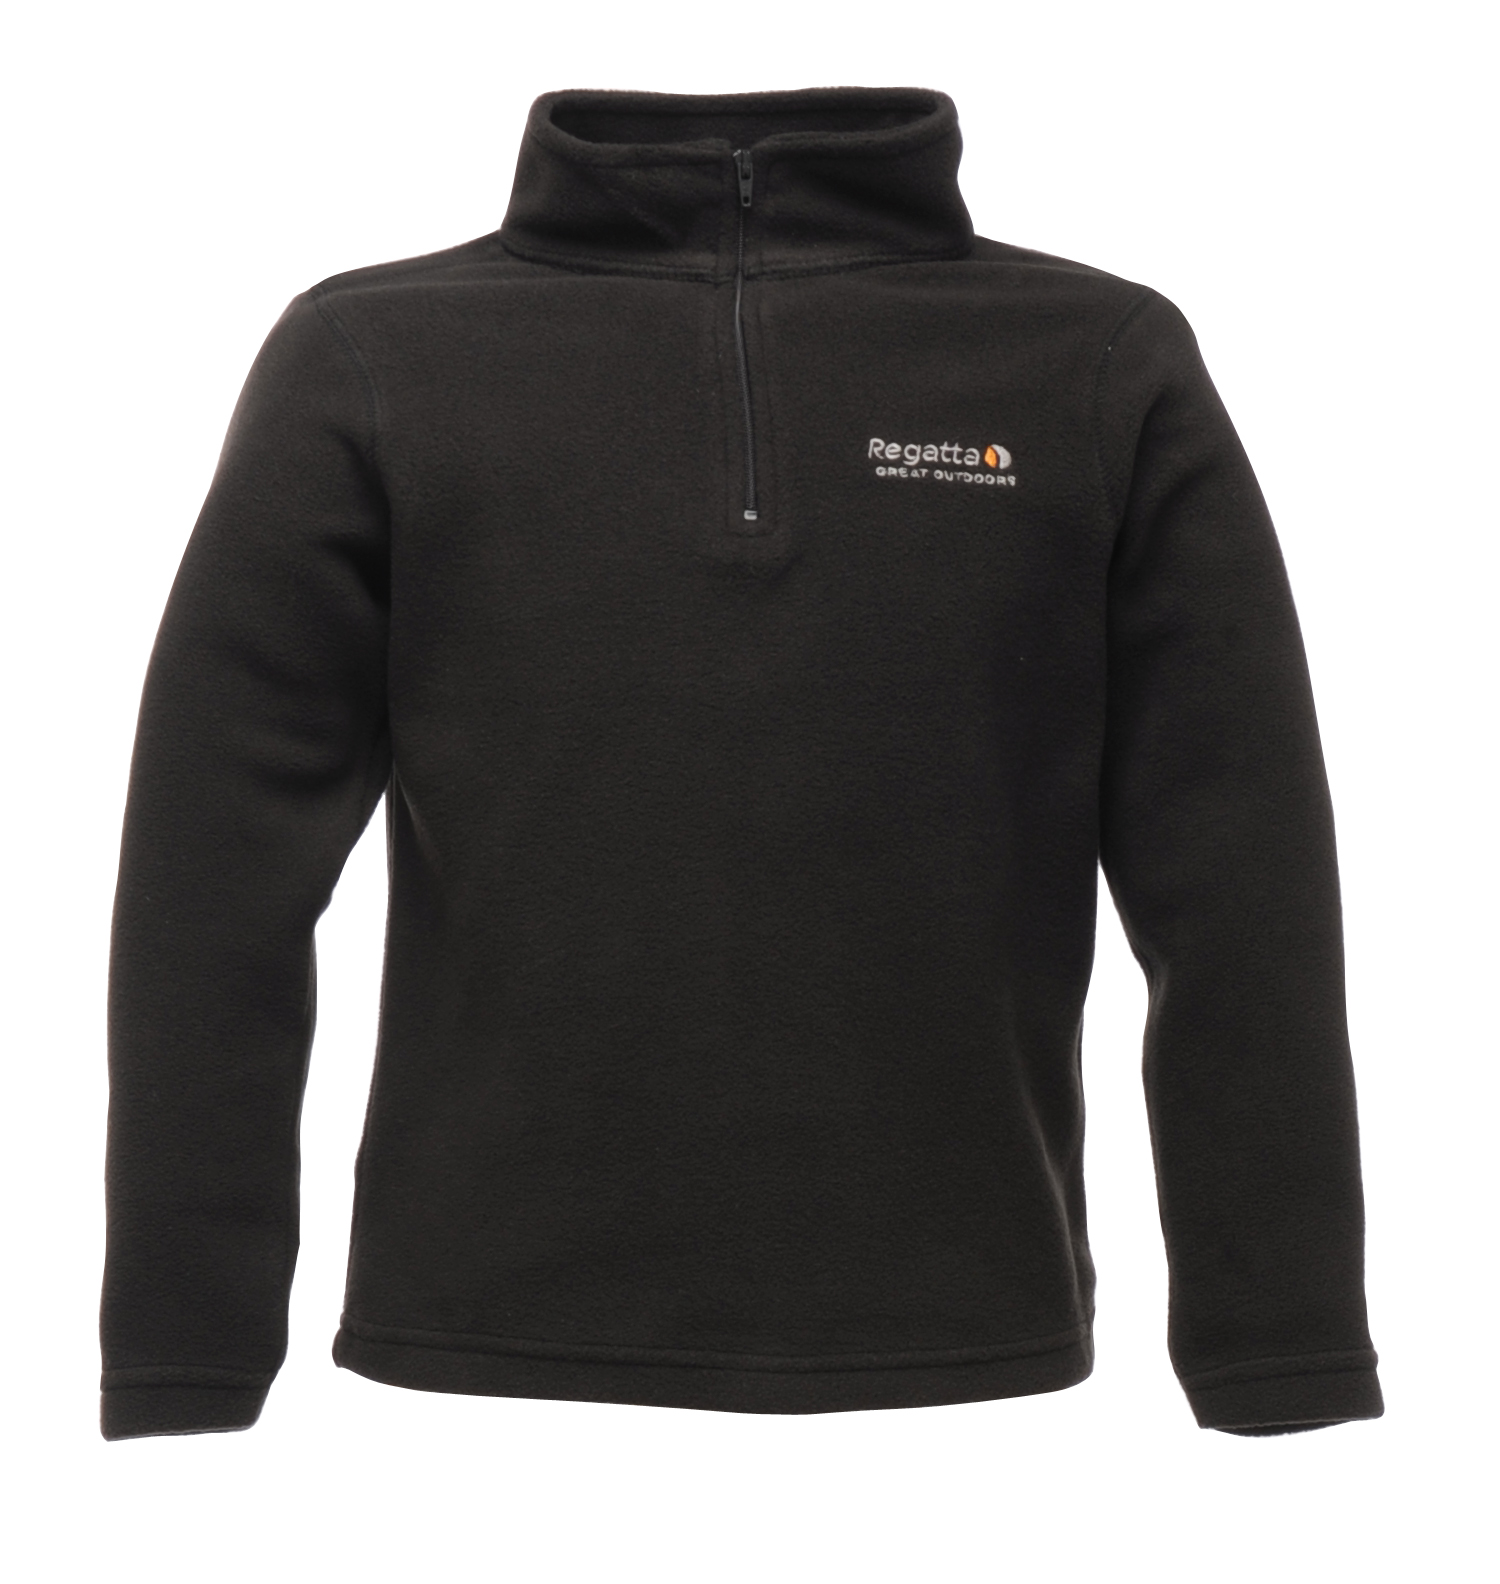 Regatta Hotshot Kids Half-Zip Fleece